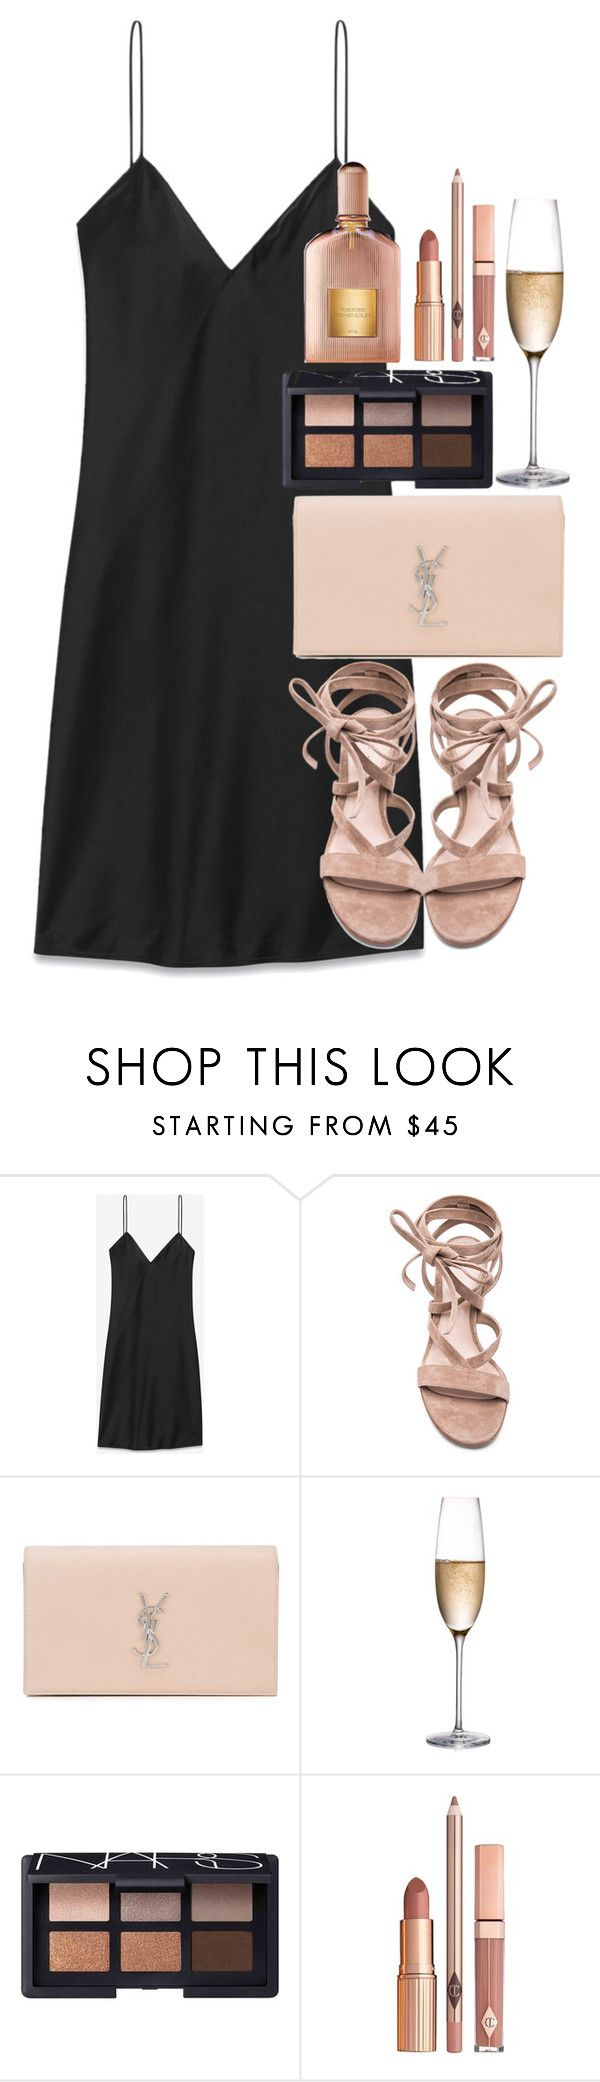 """Untitled #2823"" by elenaday ❤ liked on Polyvore featuring Yves Saint Laurent, Gianvito Rossi, RogaÅ¡ka, NARS Cosmetics, Dolce Vita and Tom Ford"